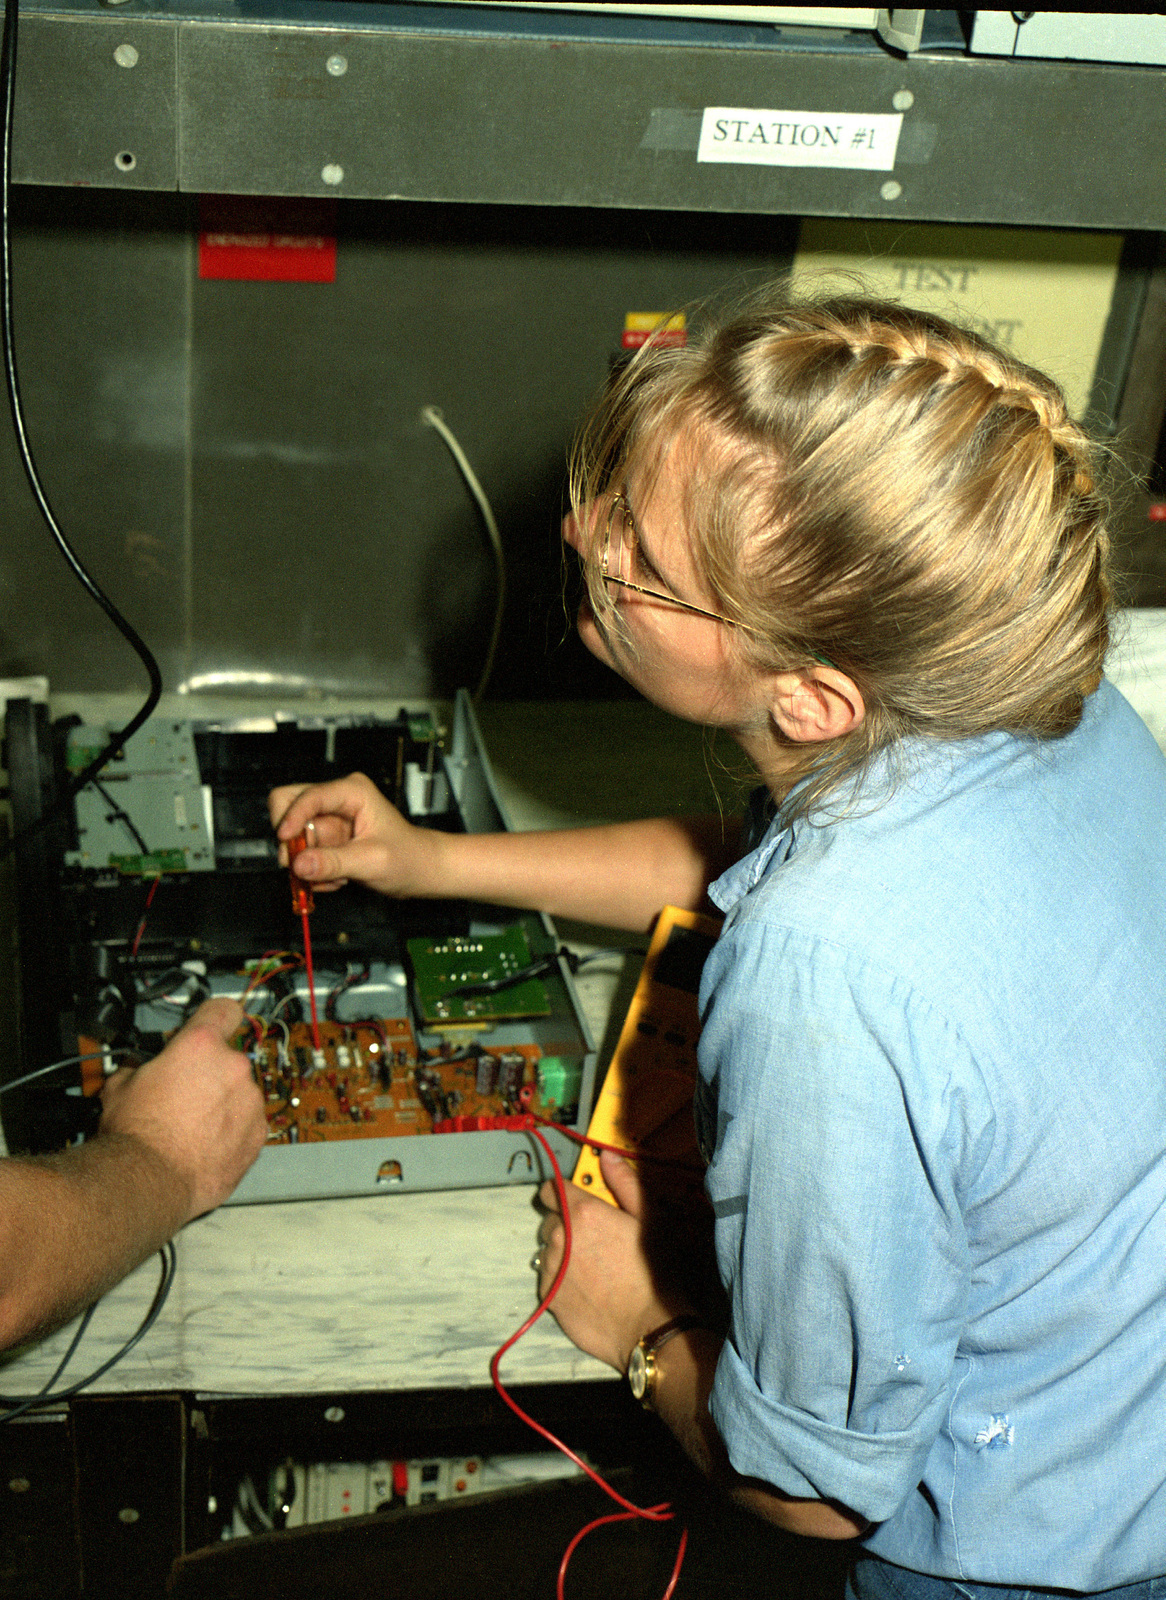 Electronic Technician Et3 Karina A Larson Makes Adjustments On Electrical Wiring Tender Piece Of Equipment